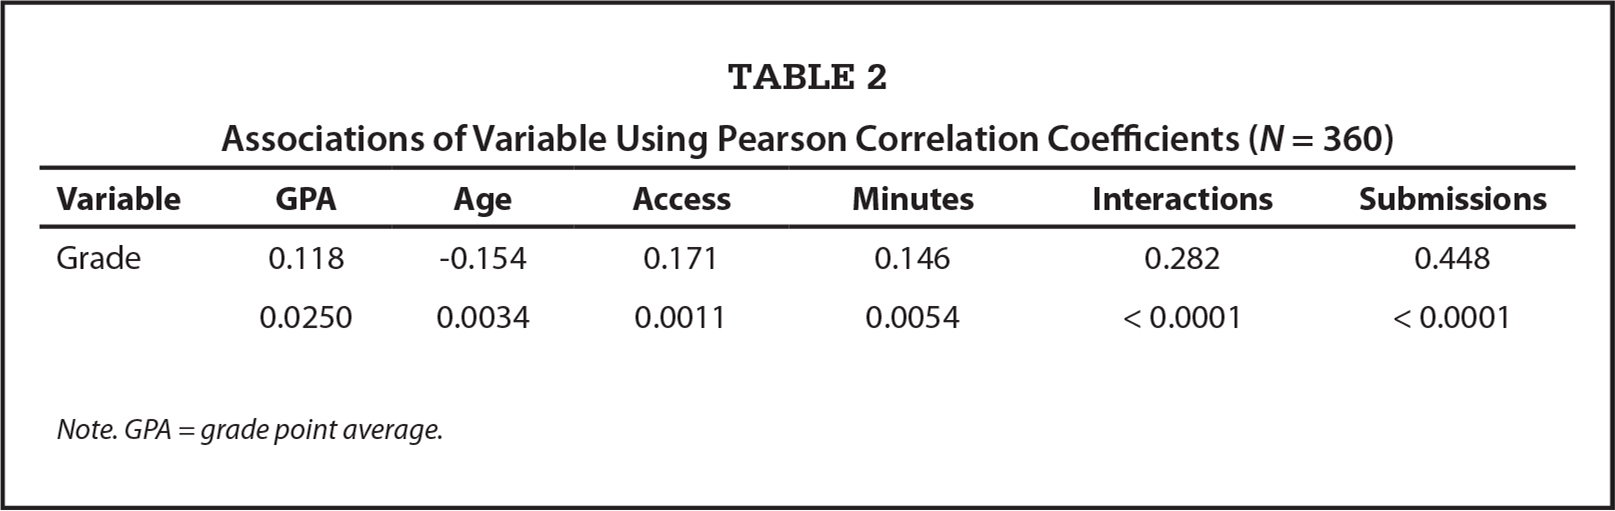 Associations of Variable Using Pearson Correlation Coefficients (N = 360)